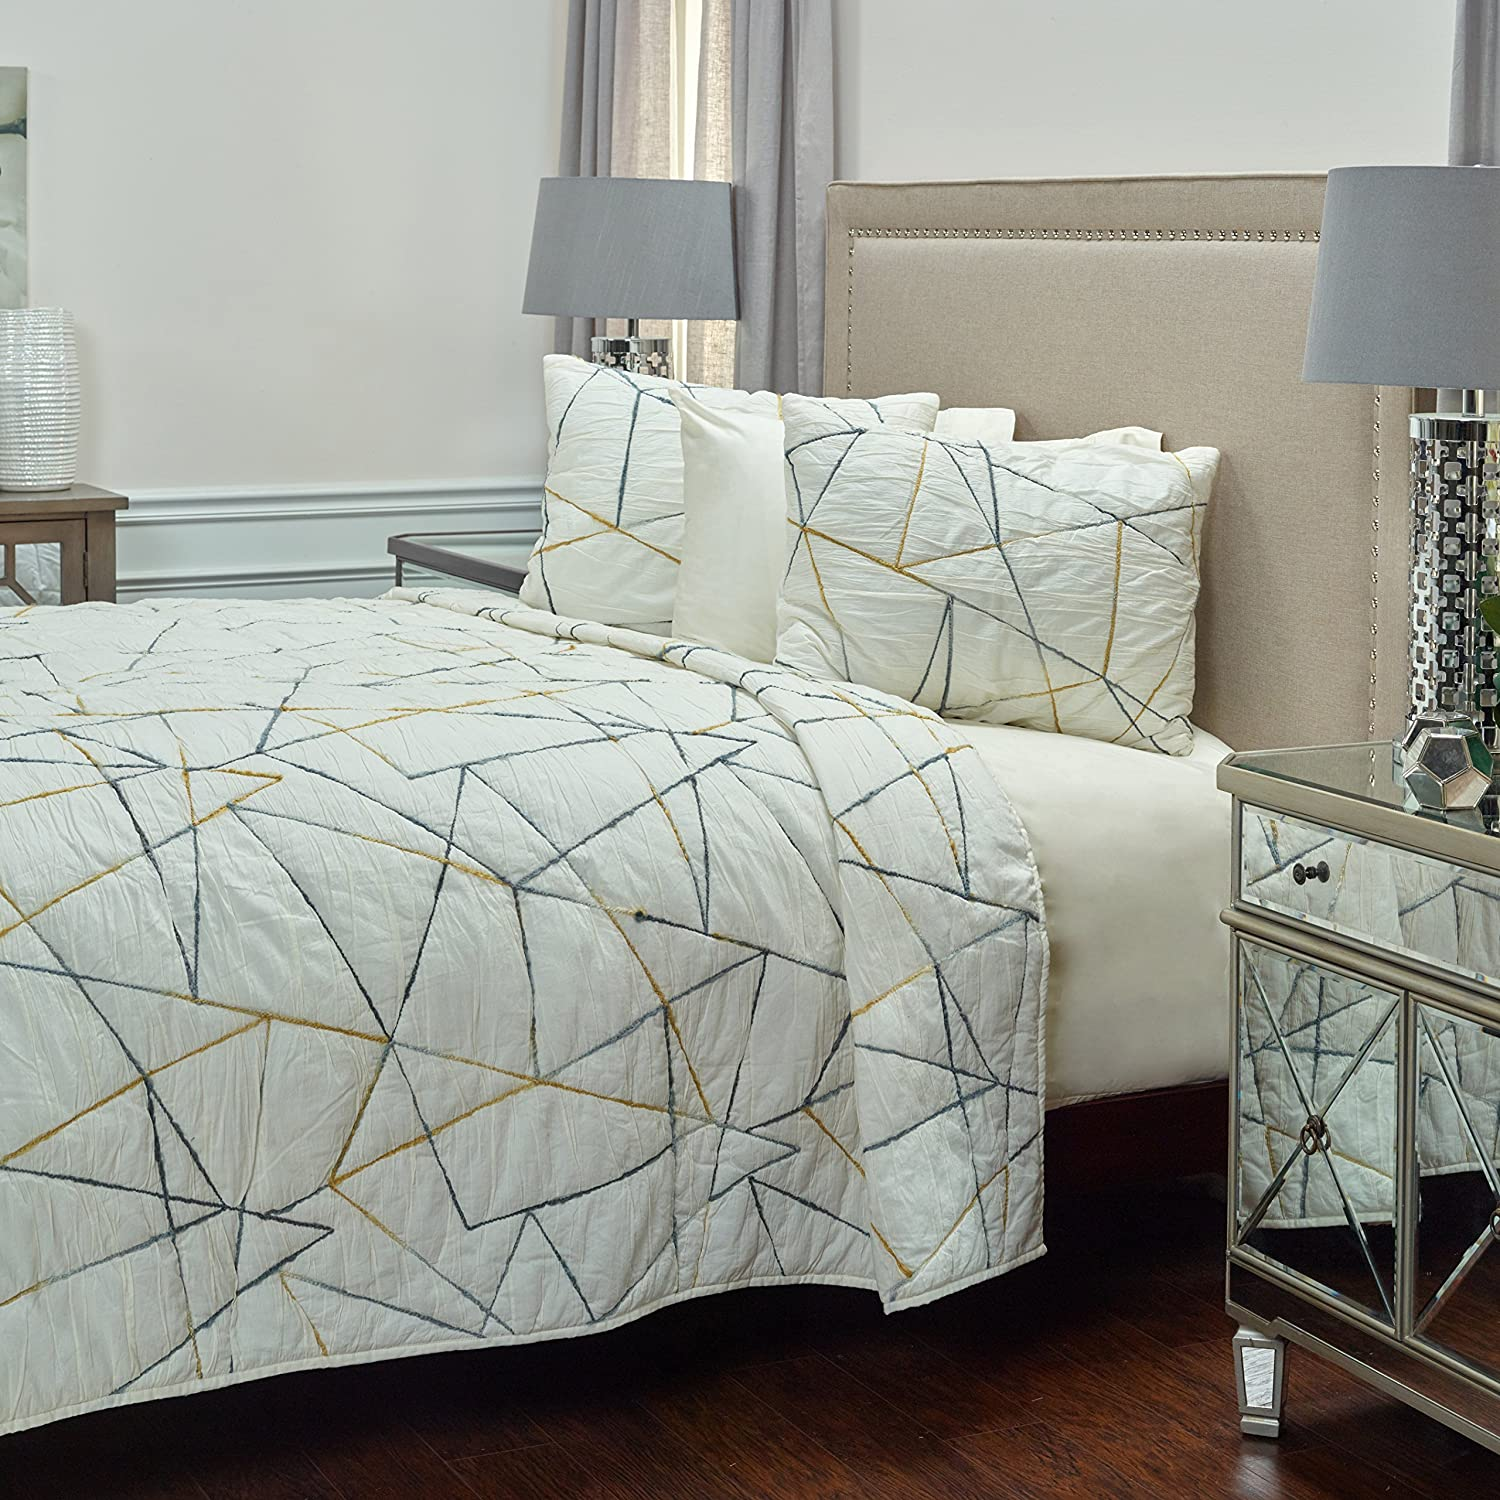 Rizzy Home QLTBQ4189IV001692 Quilt, Ivory, King